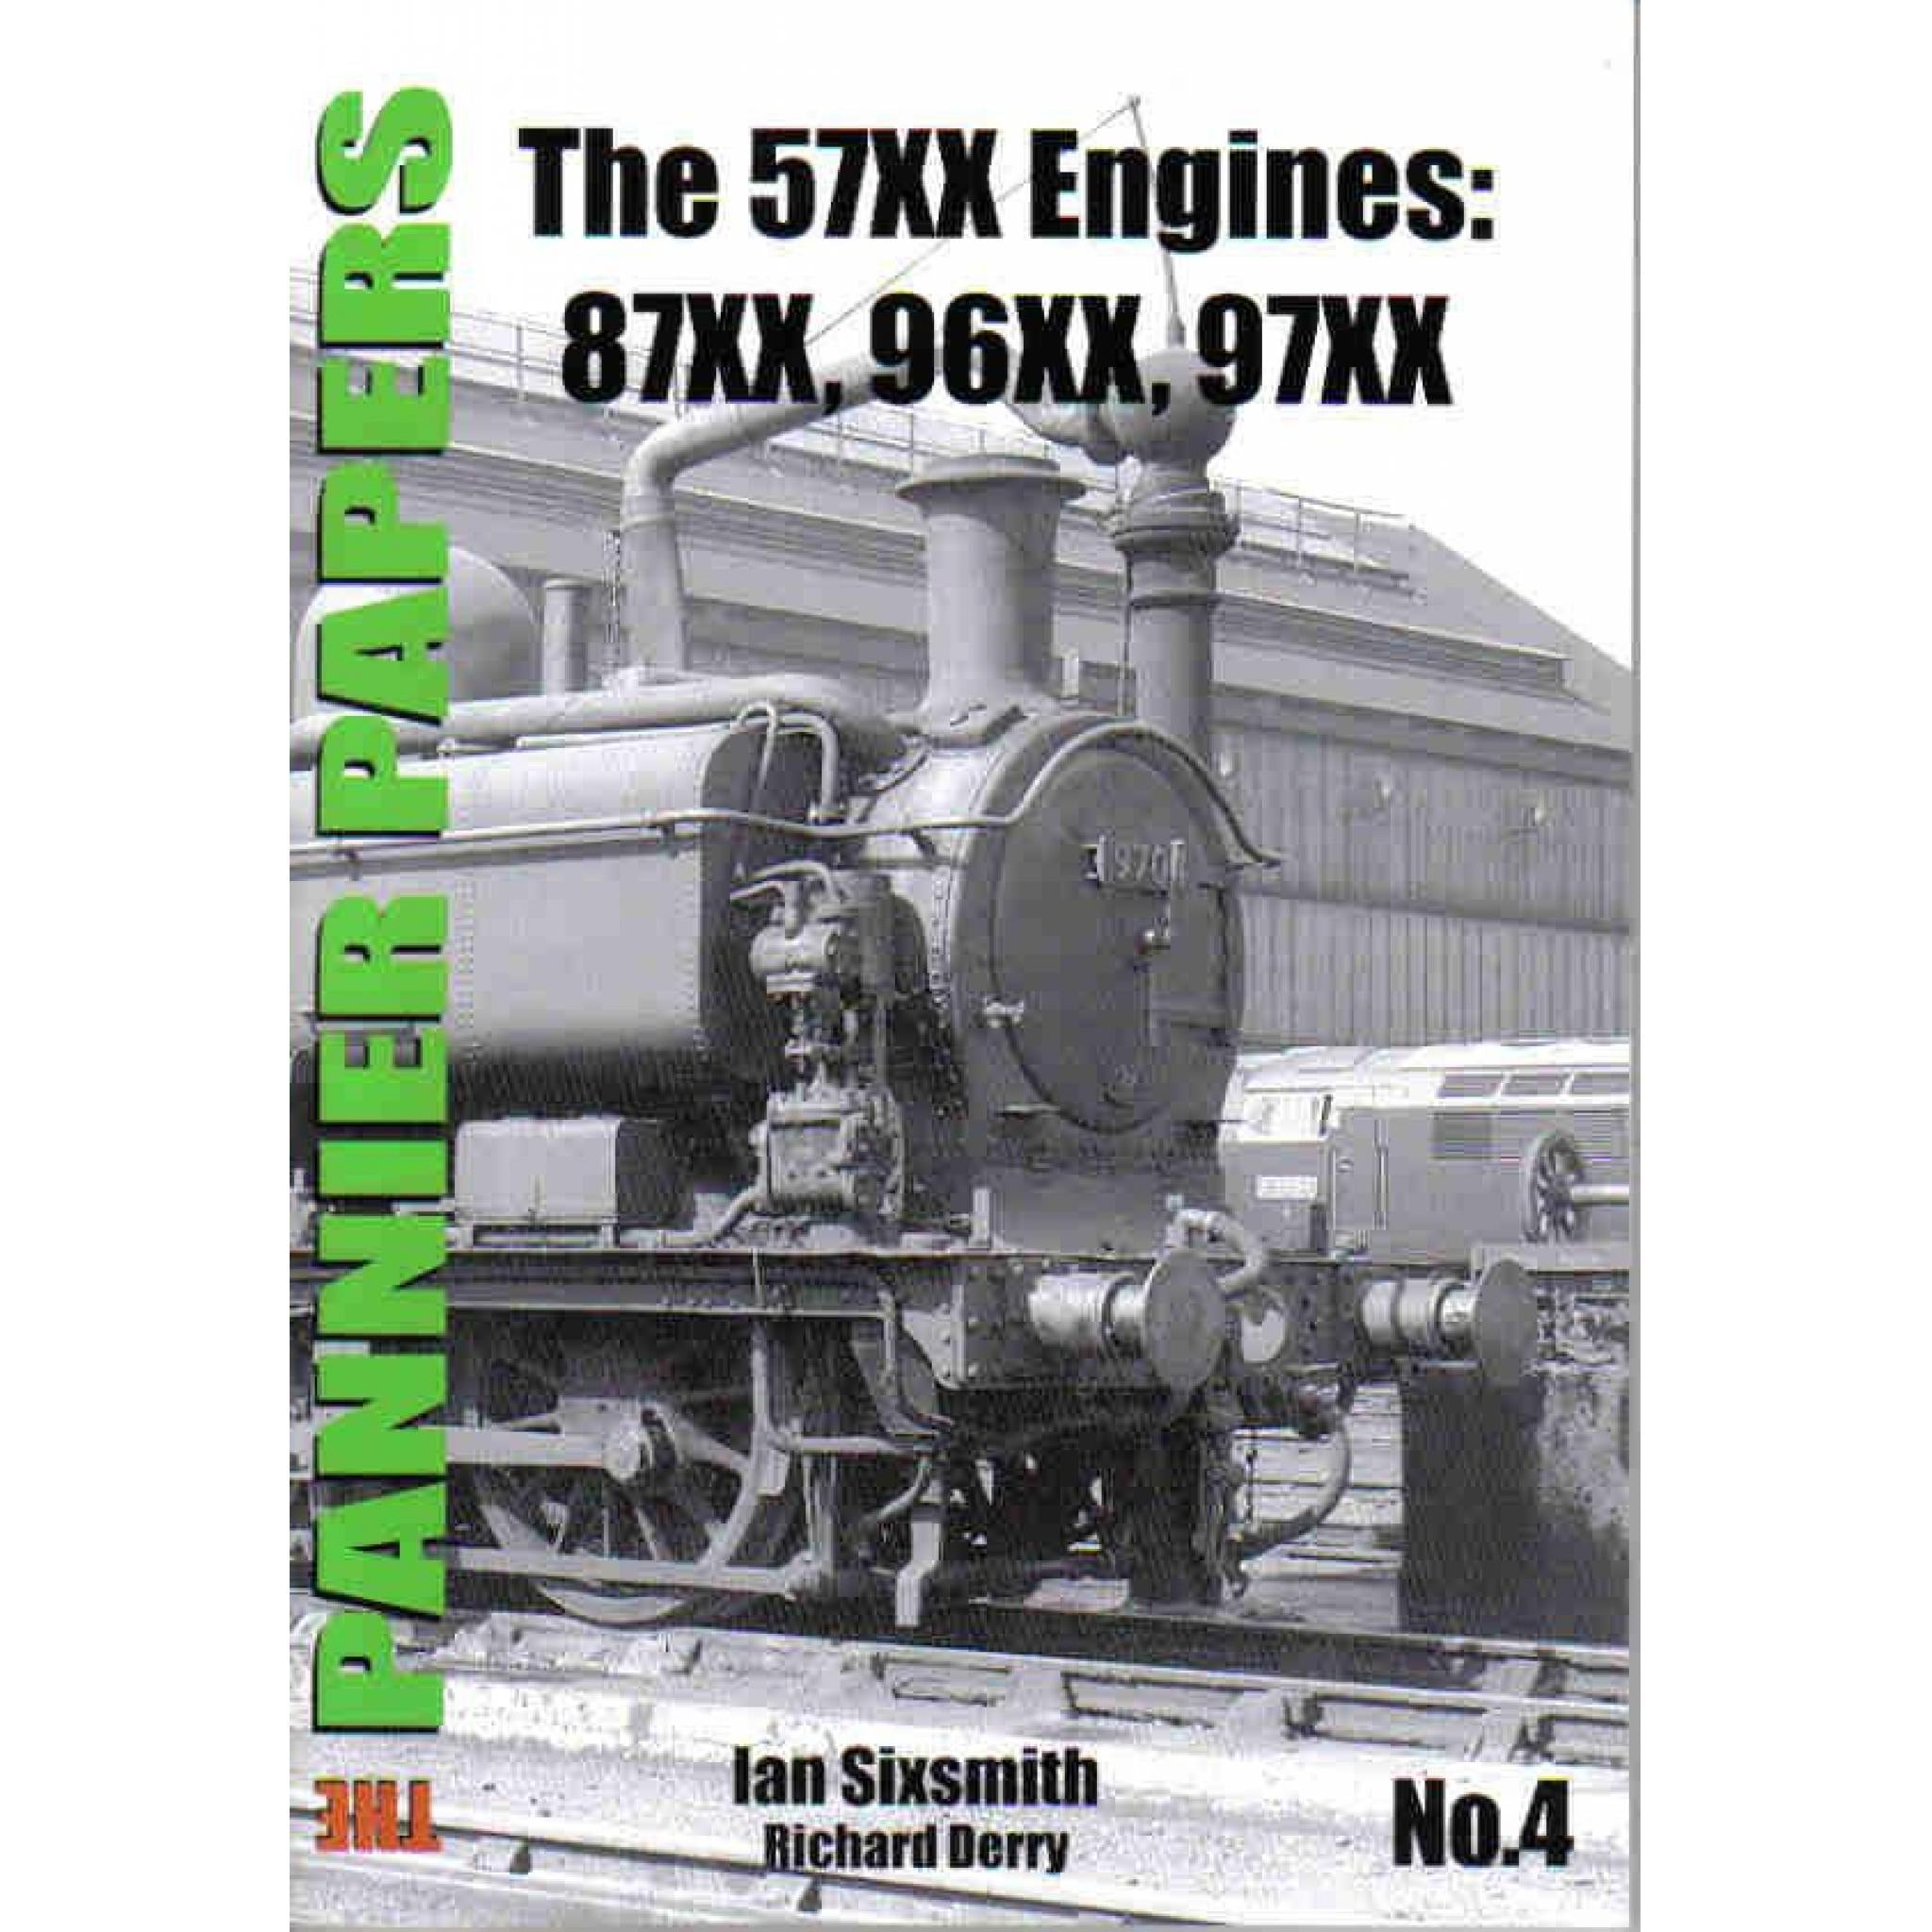 The PANNIER PAPERS No.4 The 57XX Engines: 87XX, 96XX, 97XX (Low stocks be quick)